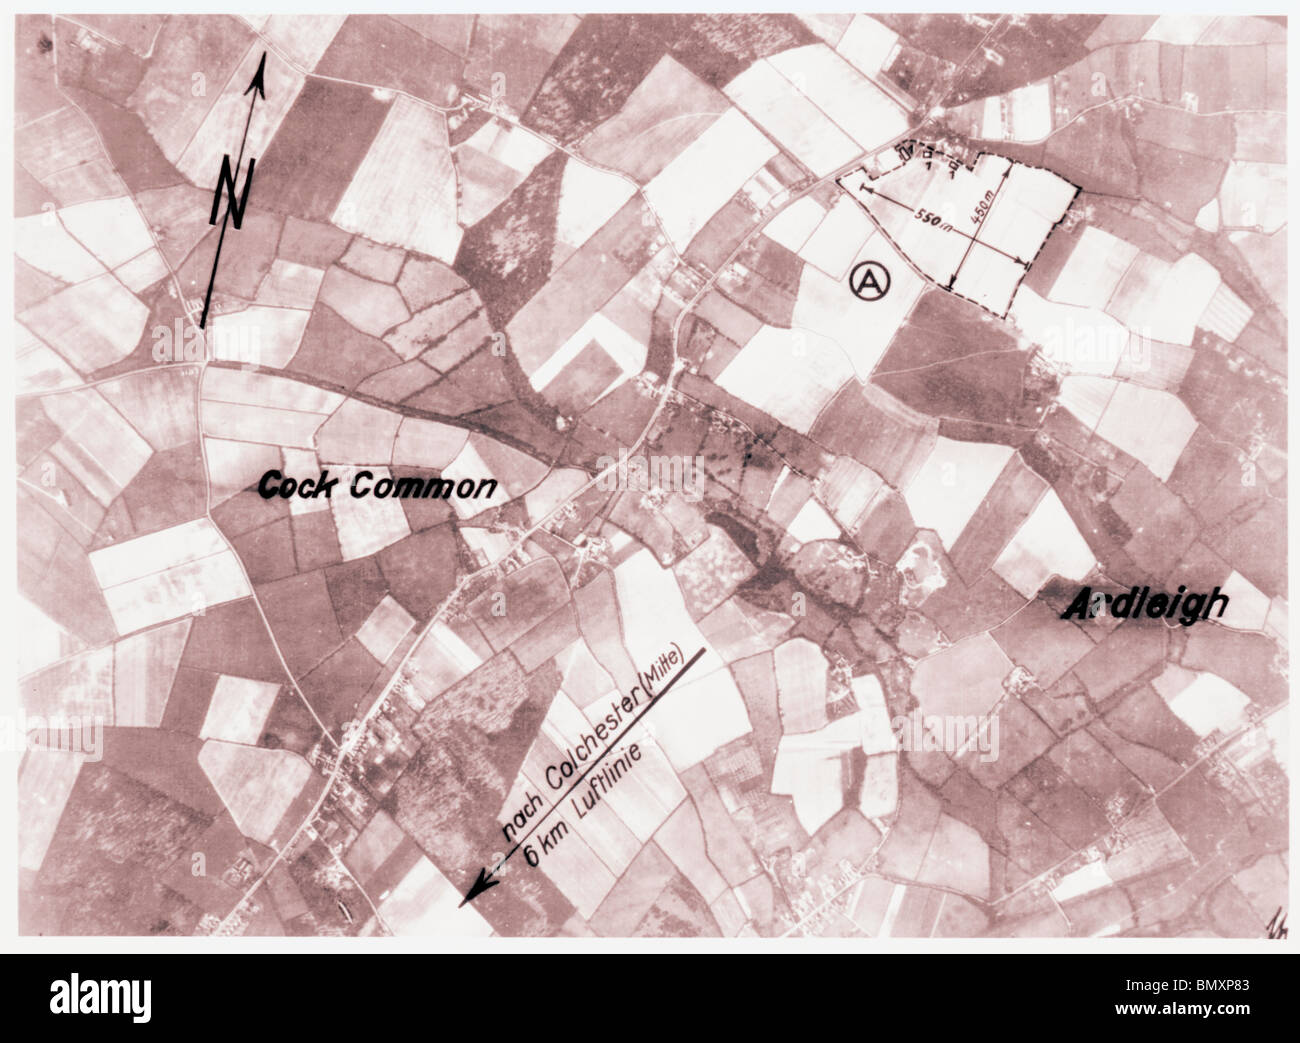 Cook Common, Ardleigh, Nr. Colchester - Essex 1940 Airfield - Stock Image